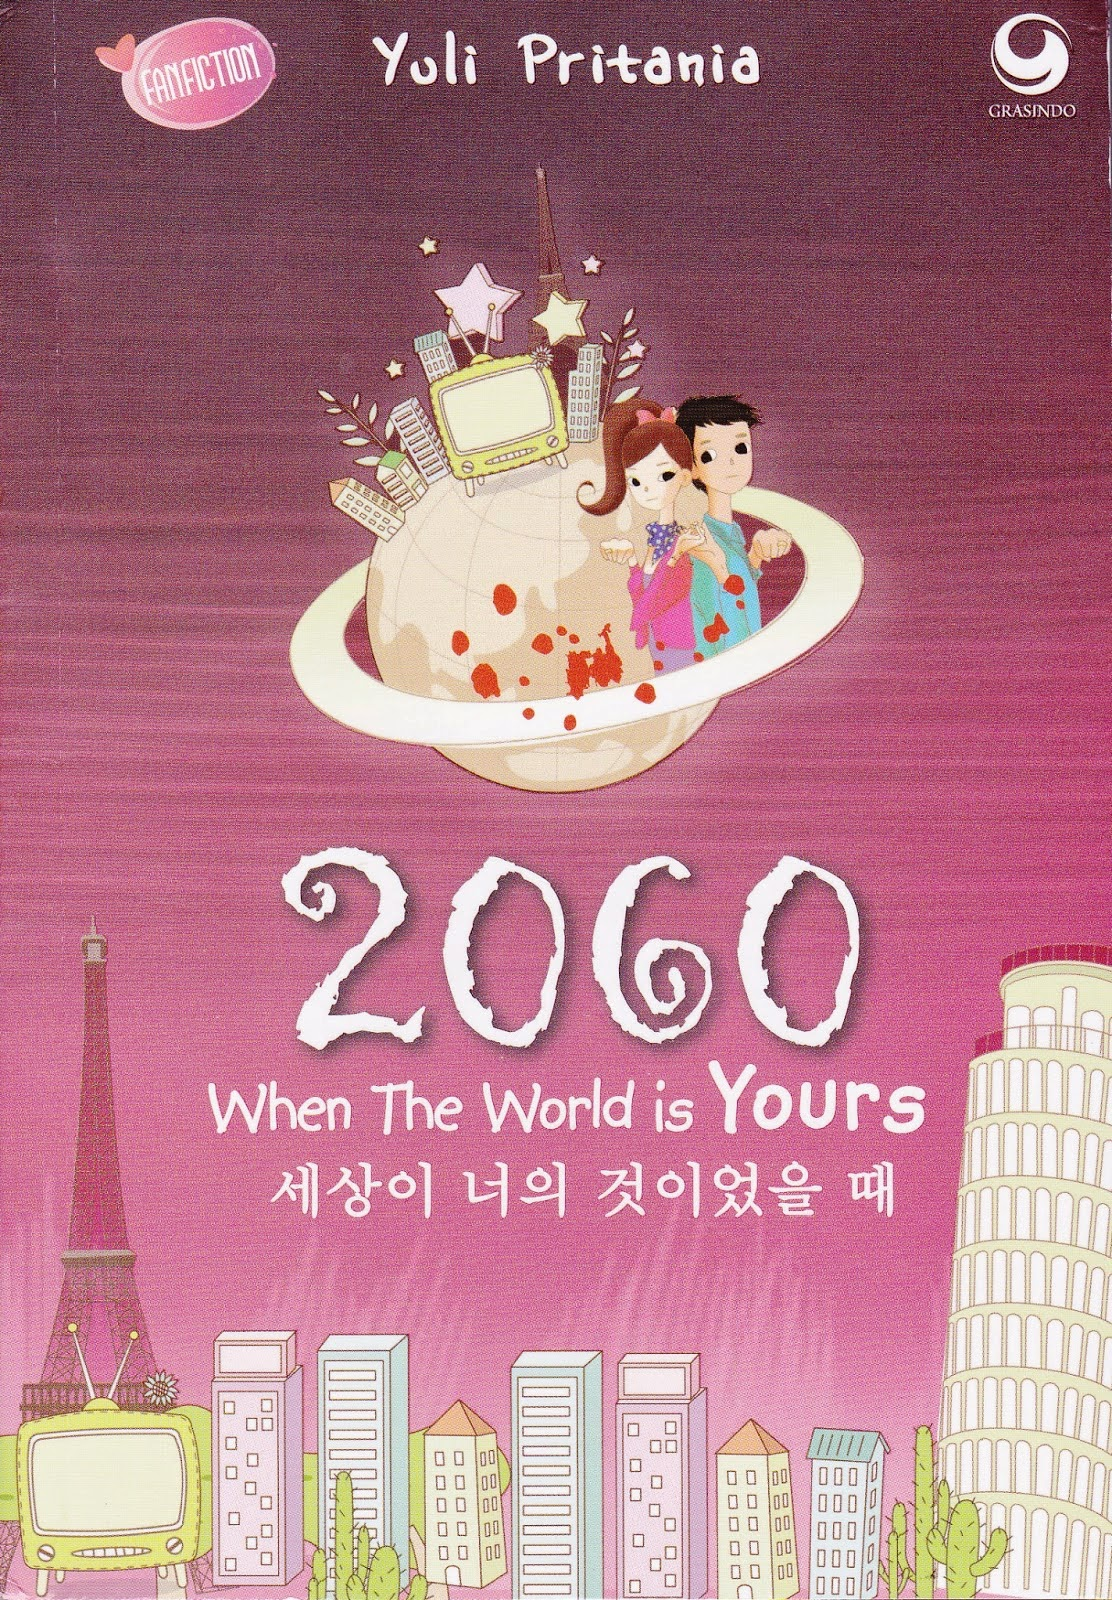 Yuli Pritania - 2060 When The World Is Yours